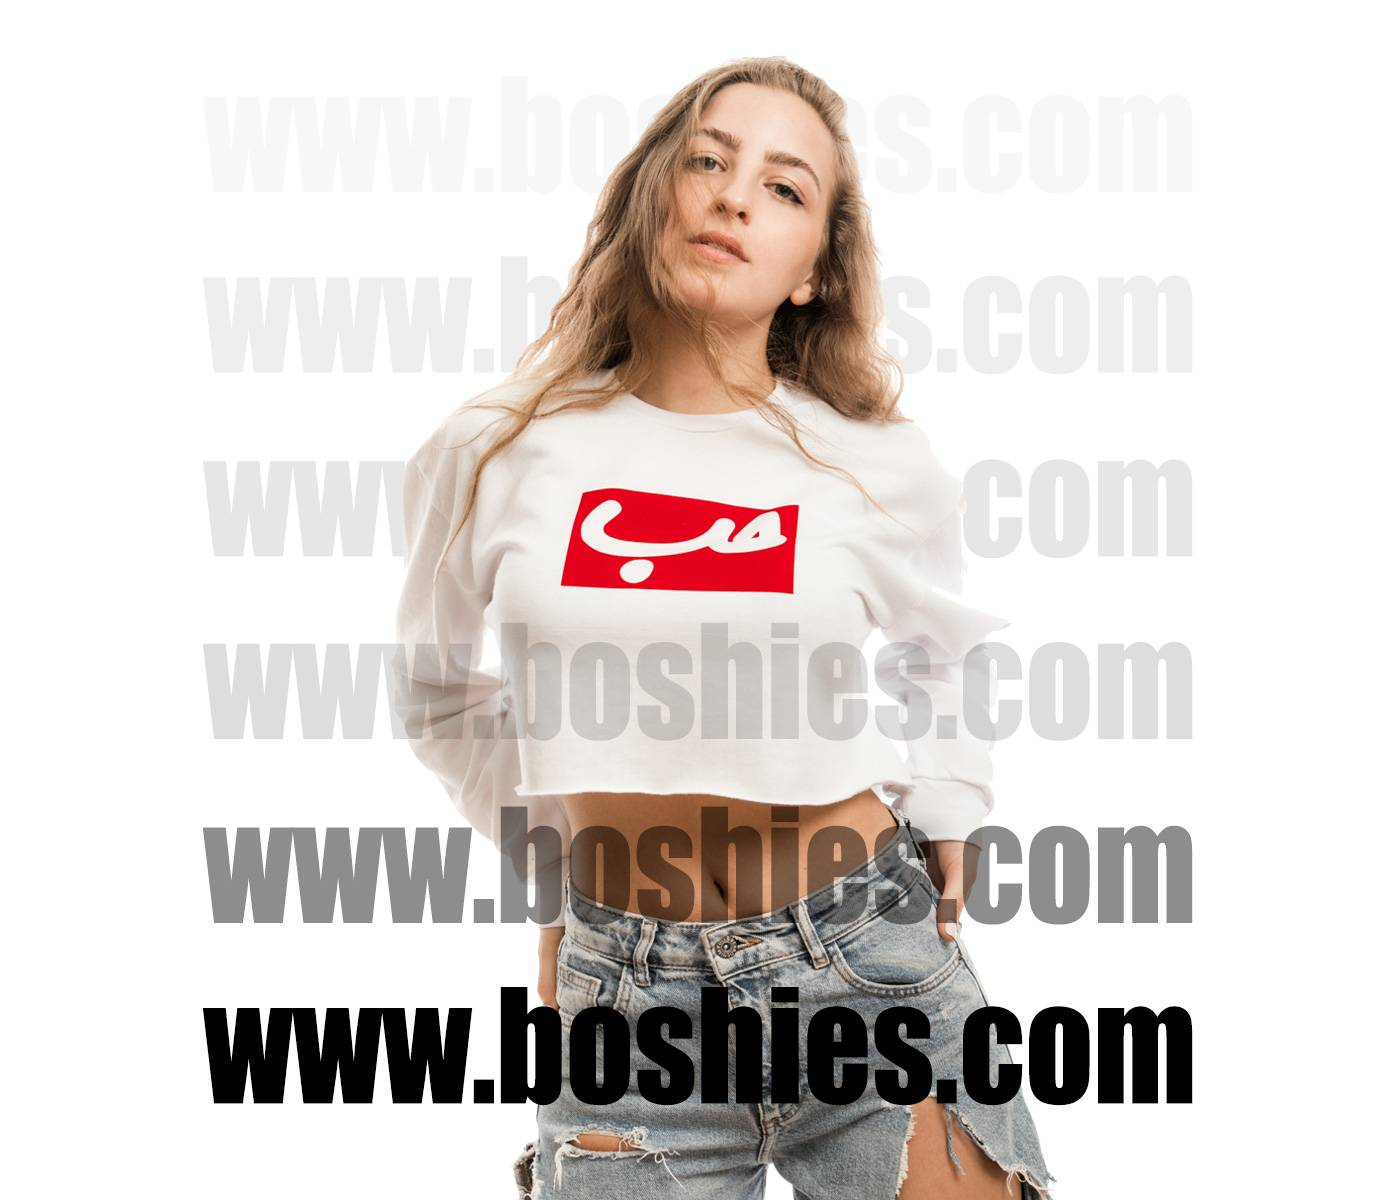 La marque Boshies lance son e-shop